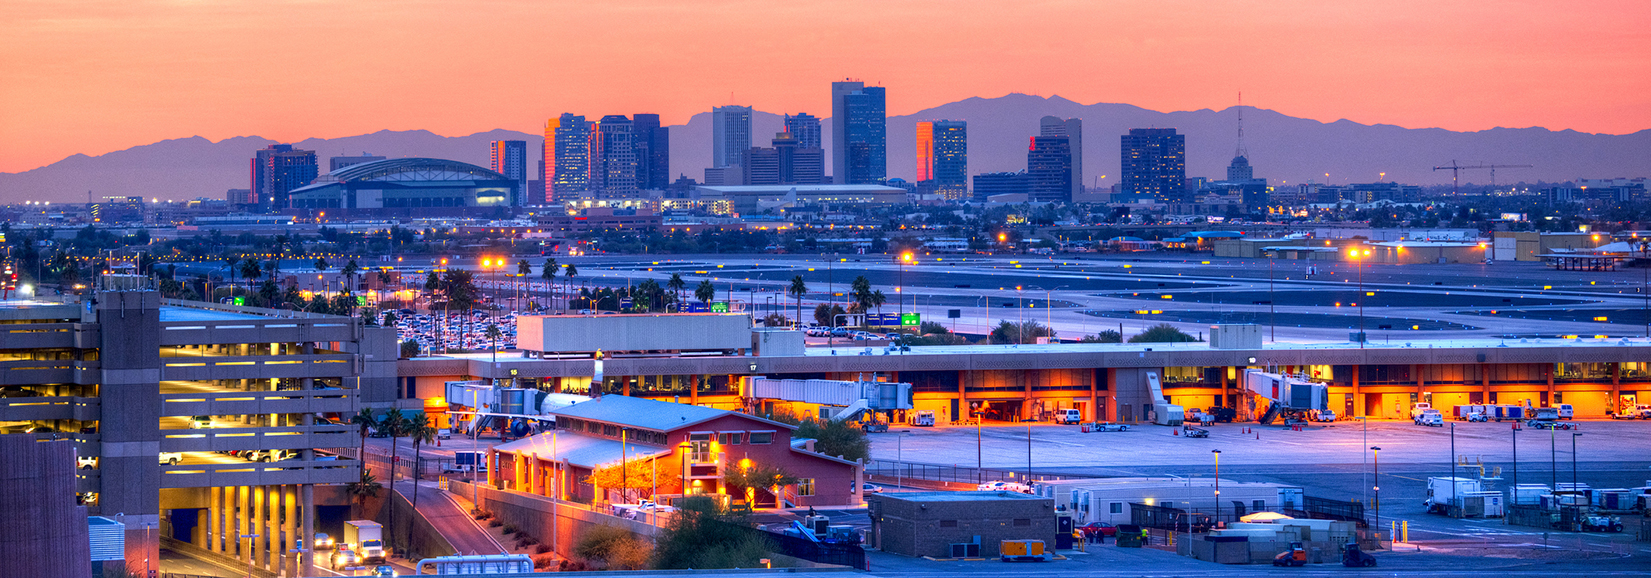 Tempe Commercial Real Estate